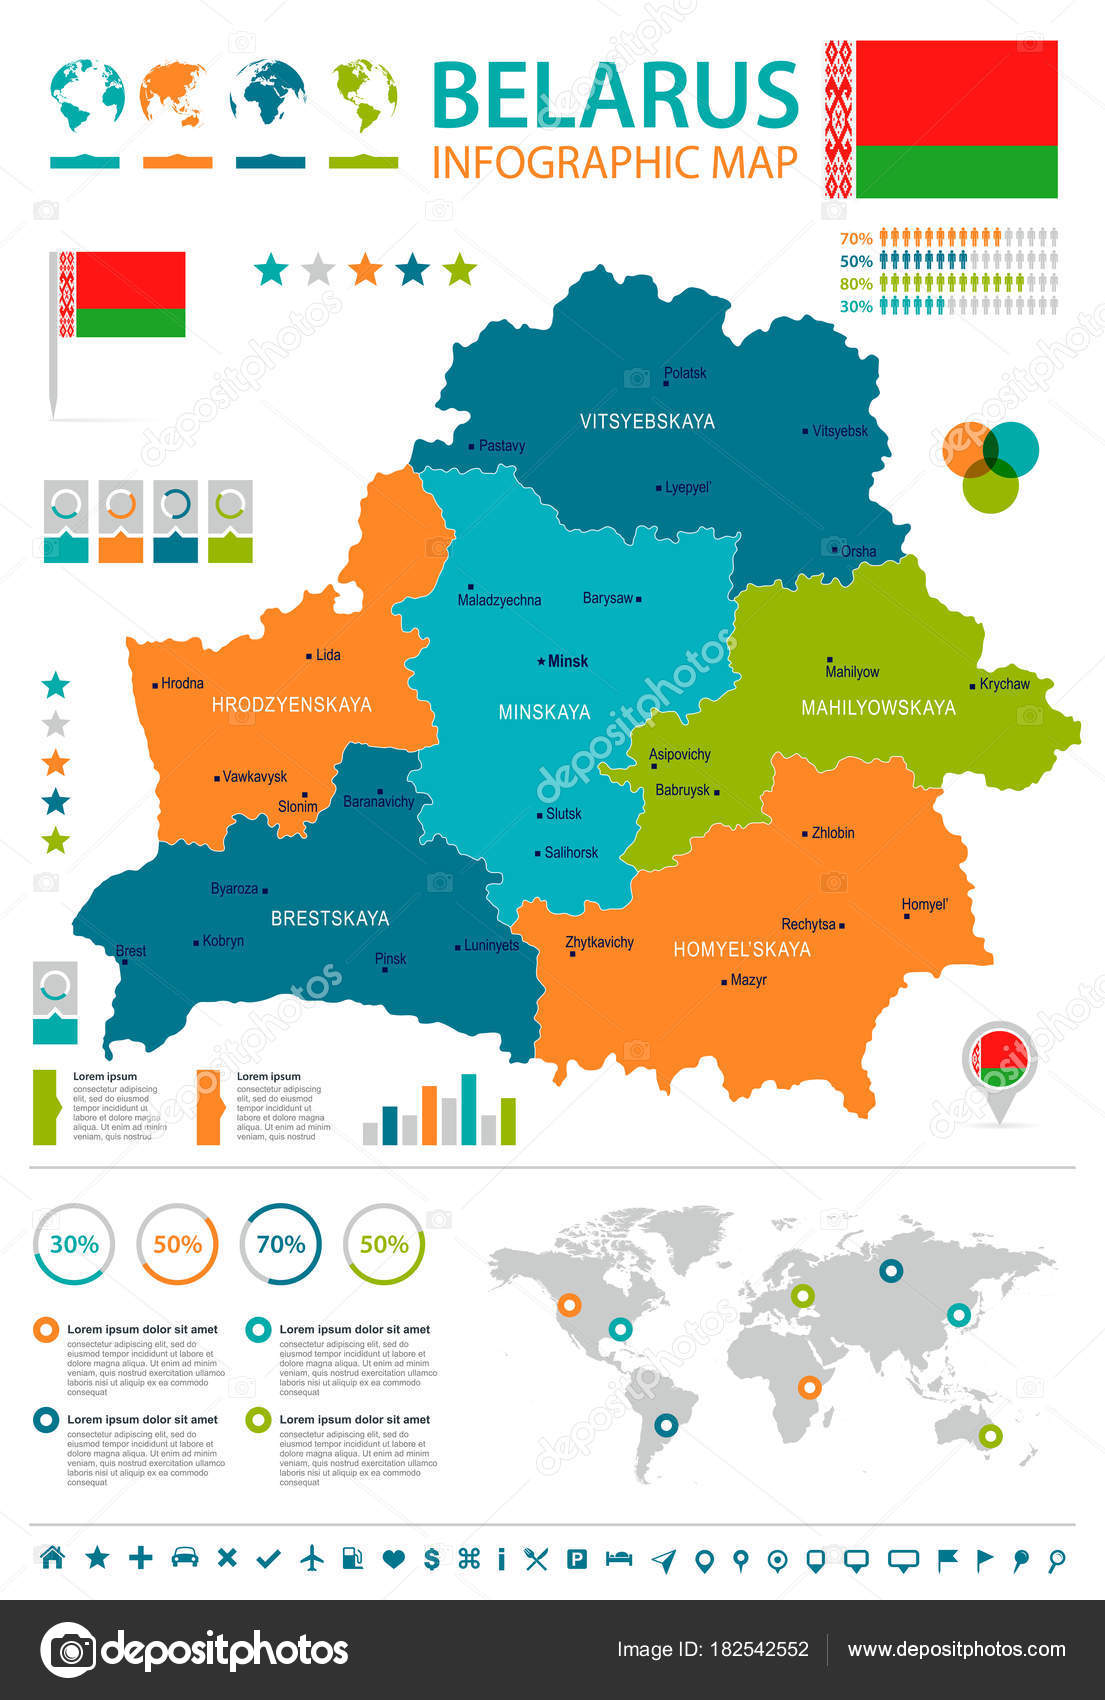 Belarus infographic map and flag Detailed Vector Illustration